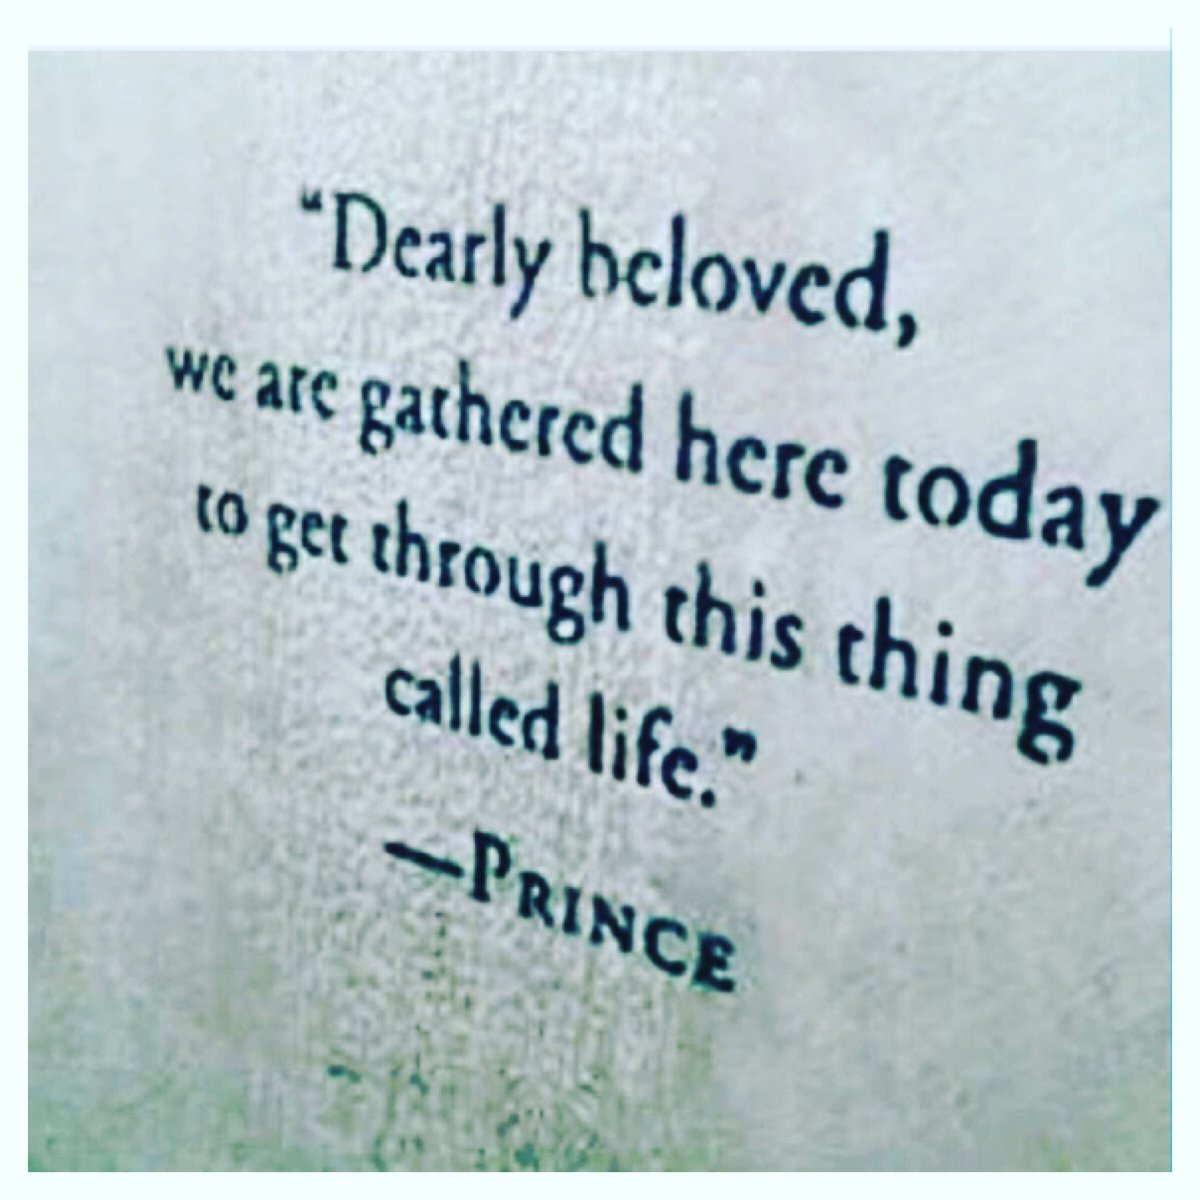 #prince for me #PurpleRain still my all time favourite #rip https://t.co/6vu9s6CLq7